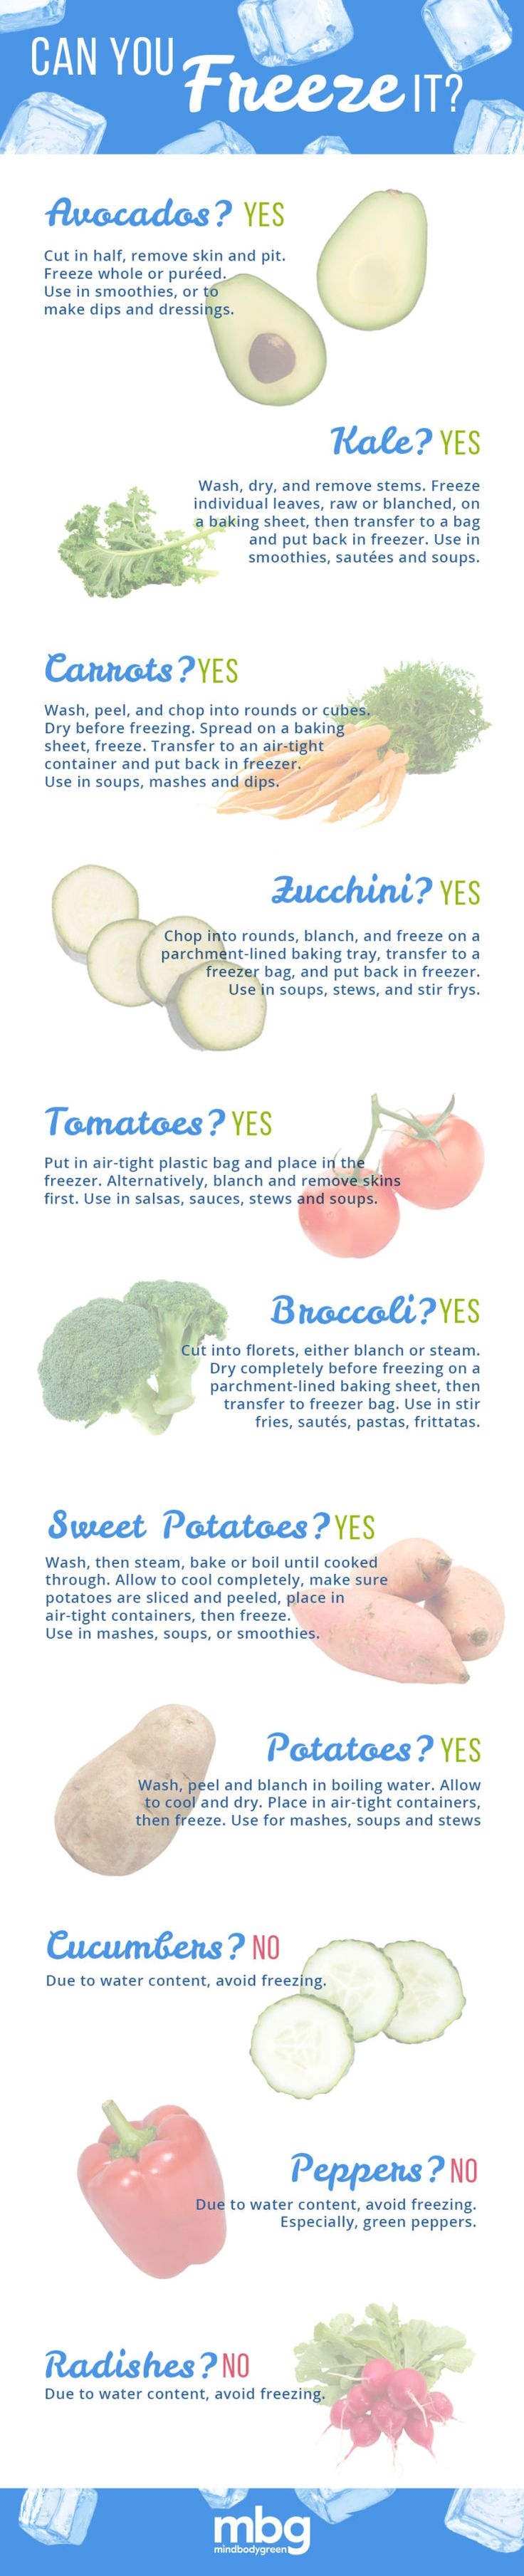 Can You Freeze It? A Mini Guide To Vegetables (Infographic) - mindbodygreen.com